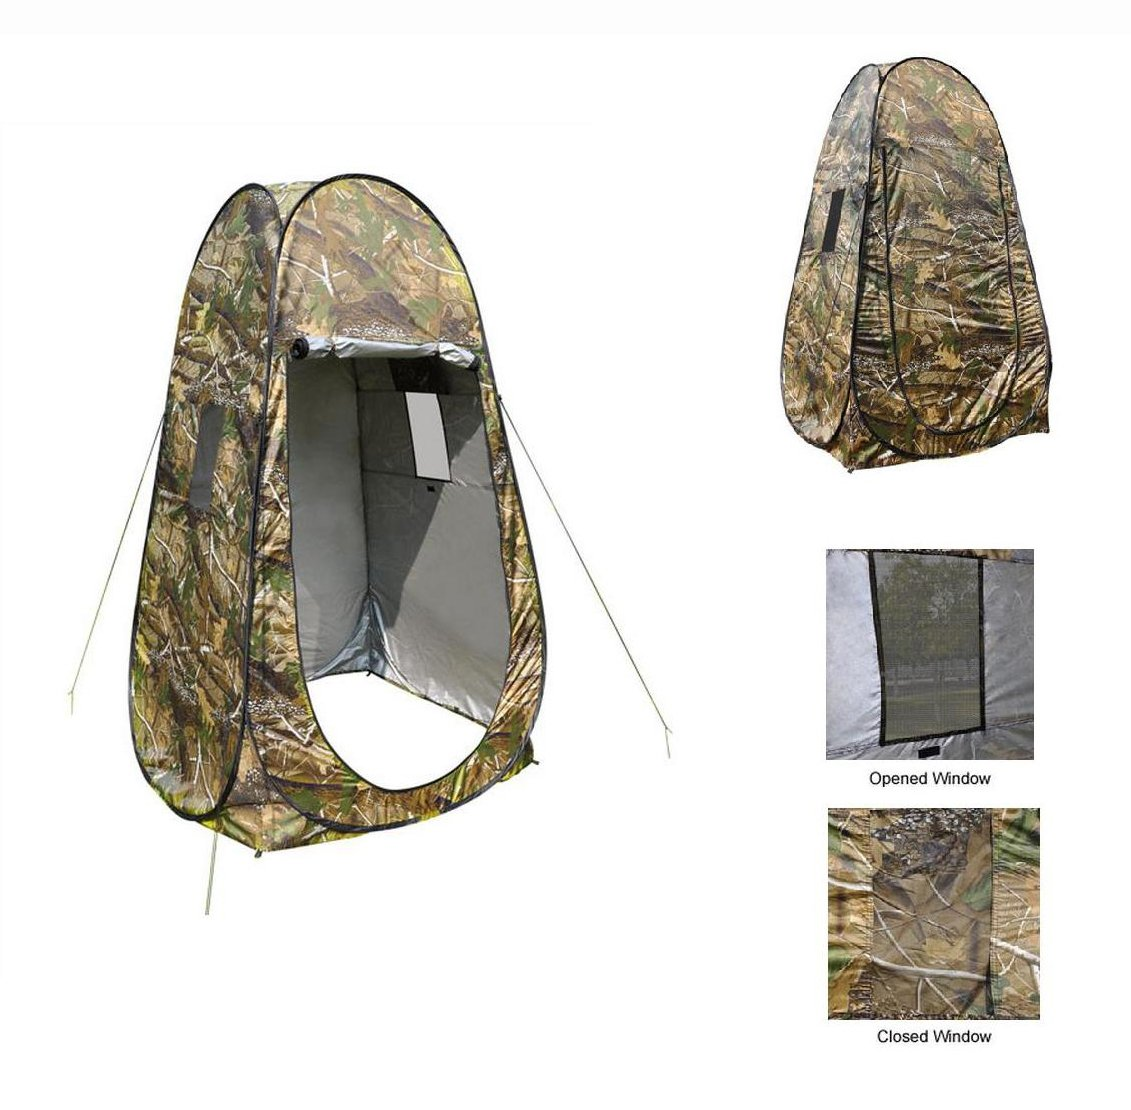 Amazoncom Portable Privacy Shower Toilet Camping Pop Up Tent Dress Room Camouflage Easy Sports Outdoors